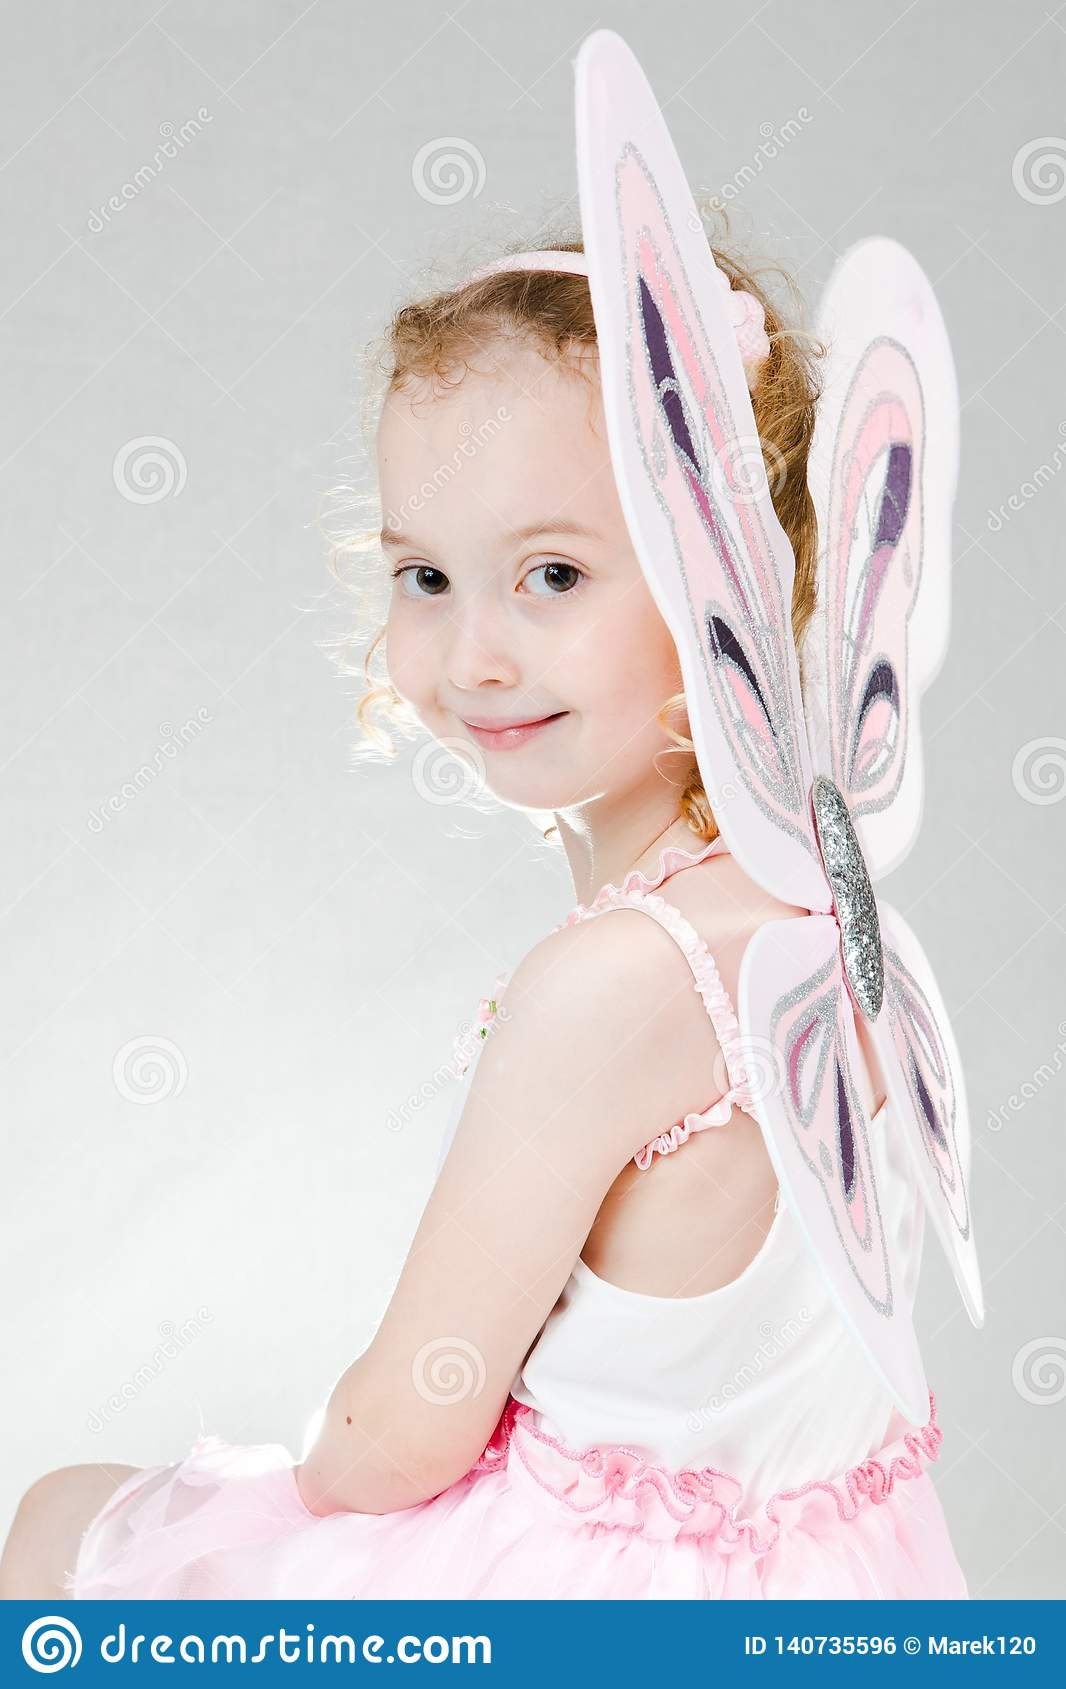 Child posing as fairy - butterfly wings